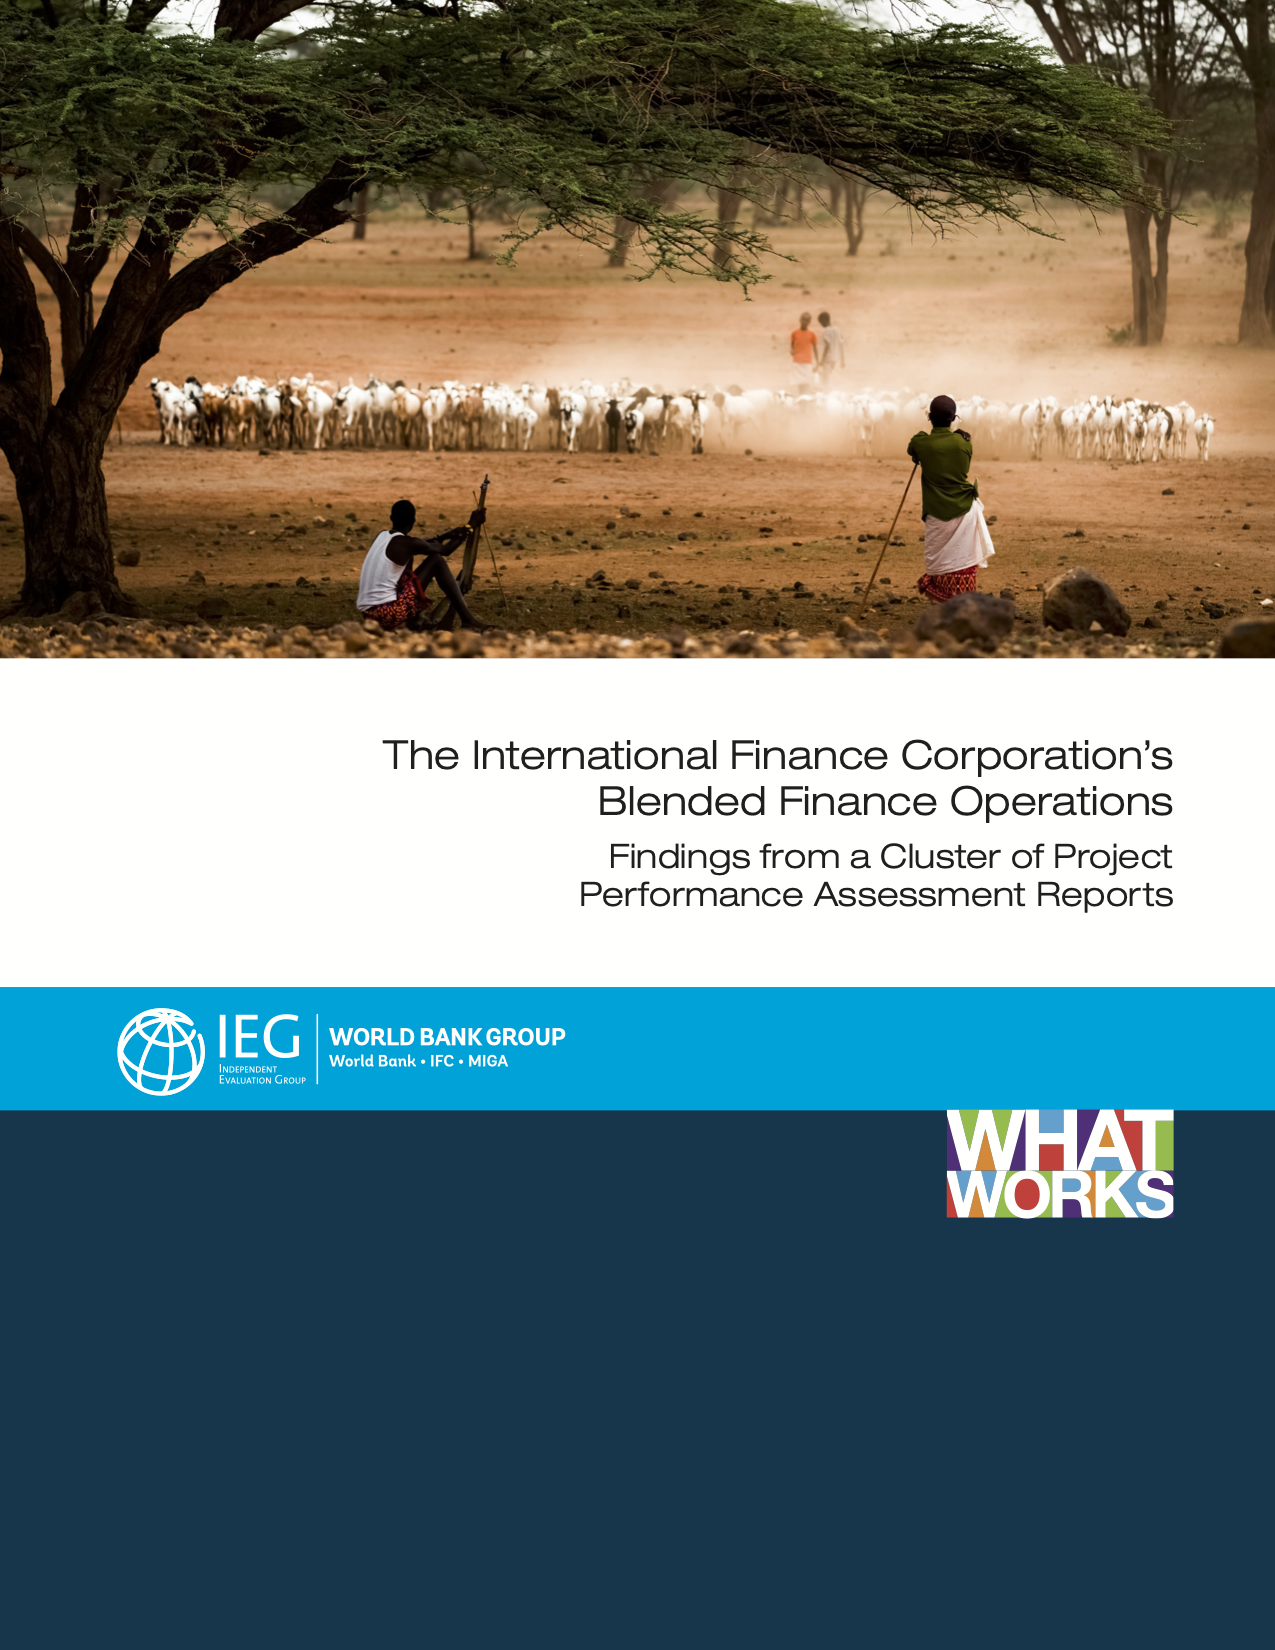 The International Finance Corporation's Blended Finance Operations: Findings from a Cluster of Project Performance Assessment Reports